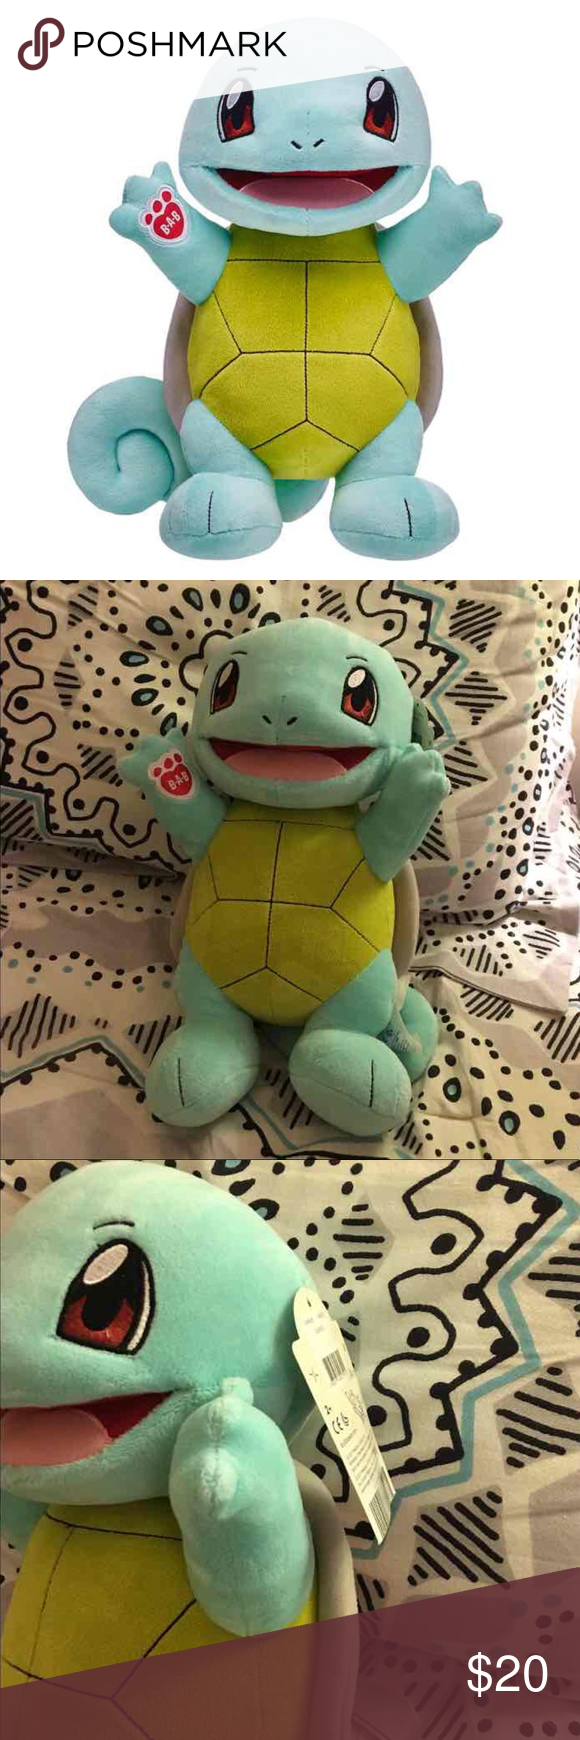 Build A Bear Squirtle Got This As A Gift But It Just Sits In My Room